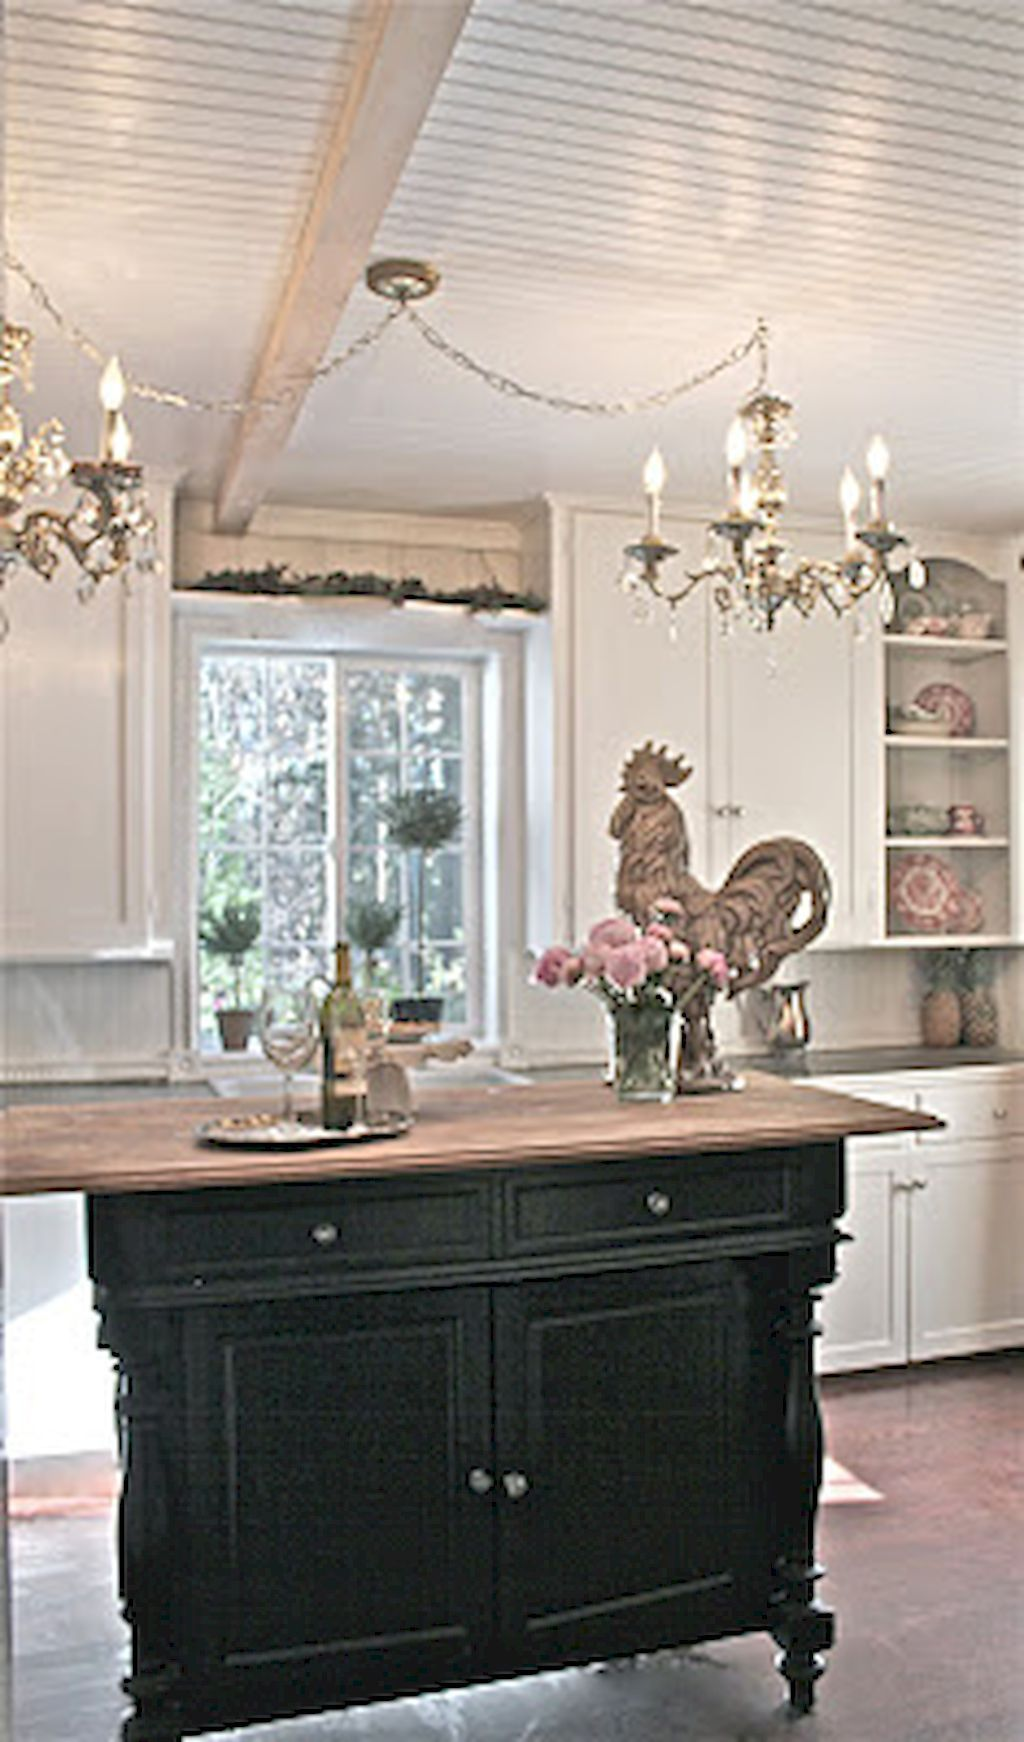 Modern french country kitchen decorating ideas (73) # ...